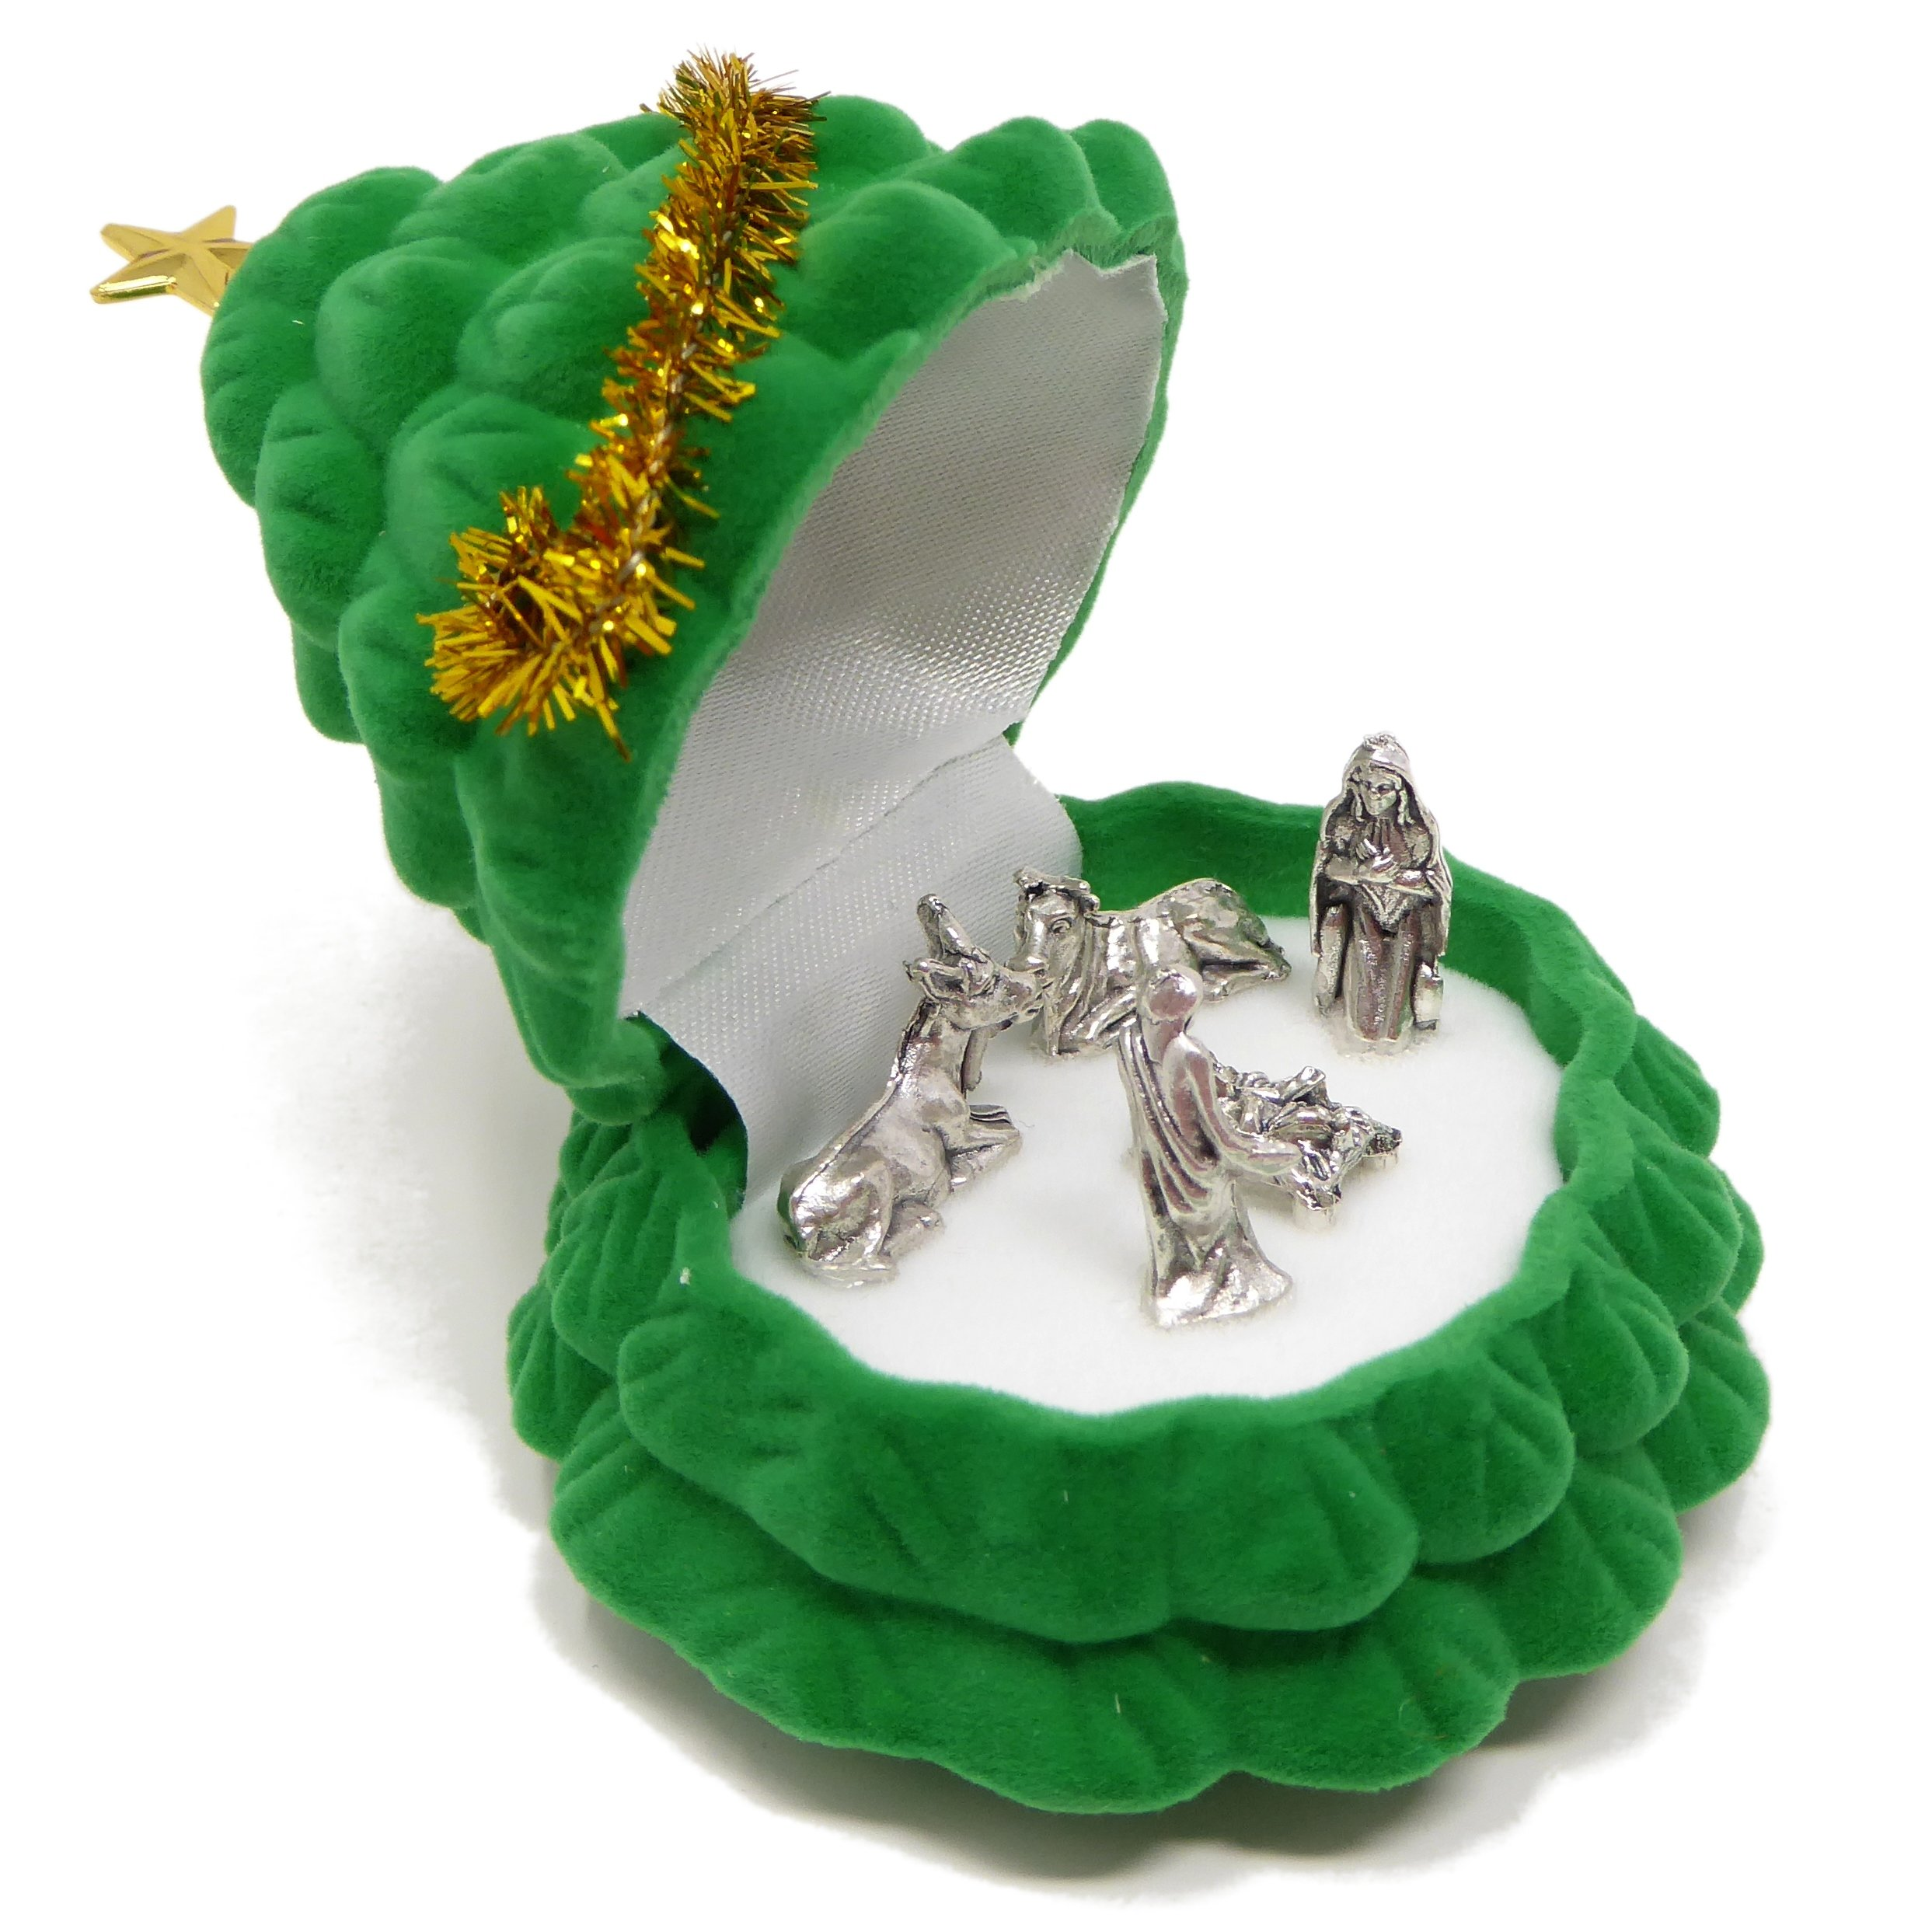 Rosary Heaven Pocket crib nativity scene in a Christmas tree gift box small 6cm Christian with window sticker by Rosary Heaven (Image #2)